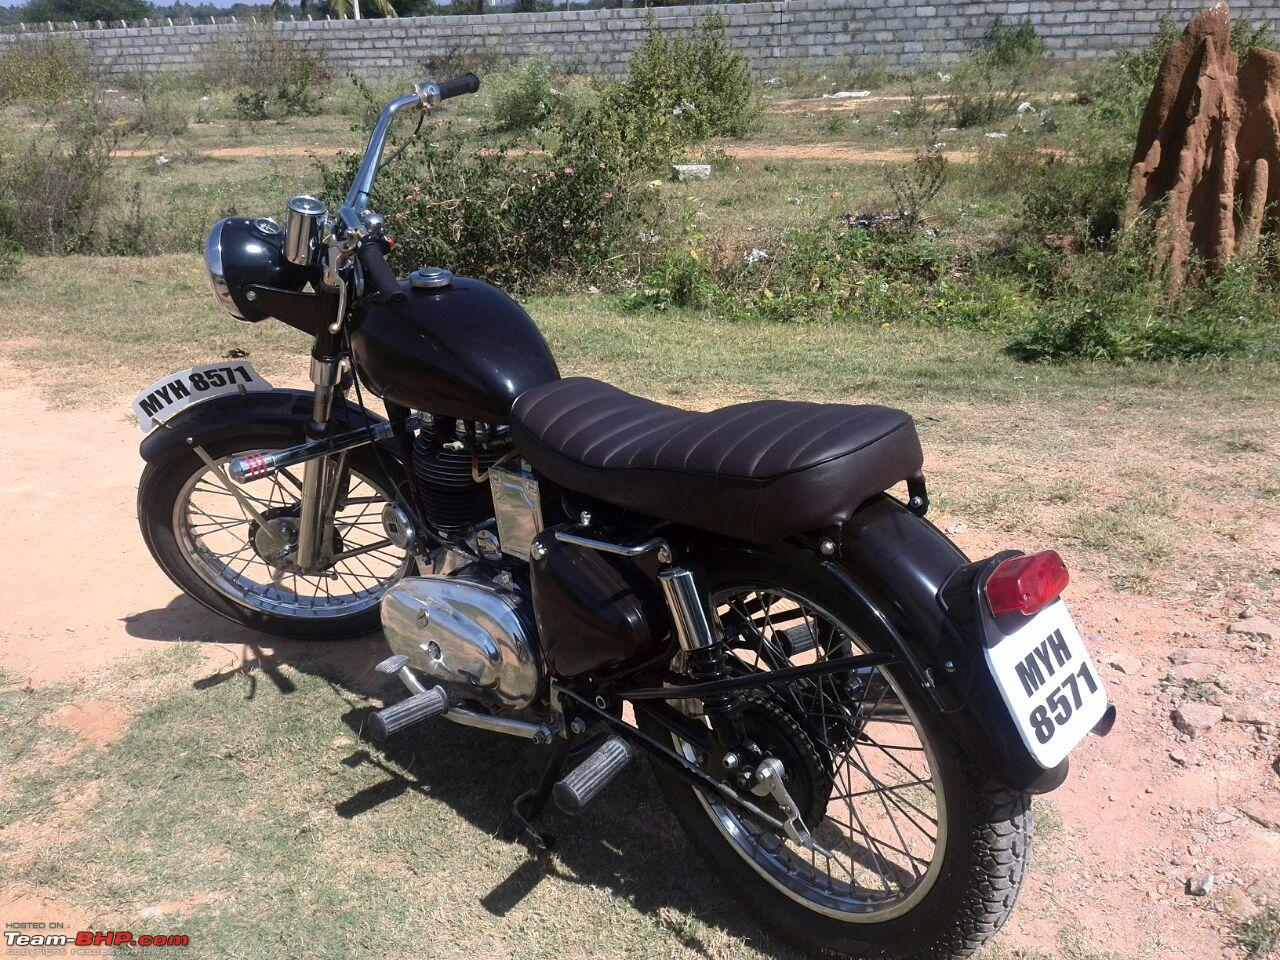 Reasonable charges or Royal loot? 1977 Enfield Standard 350